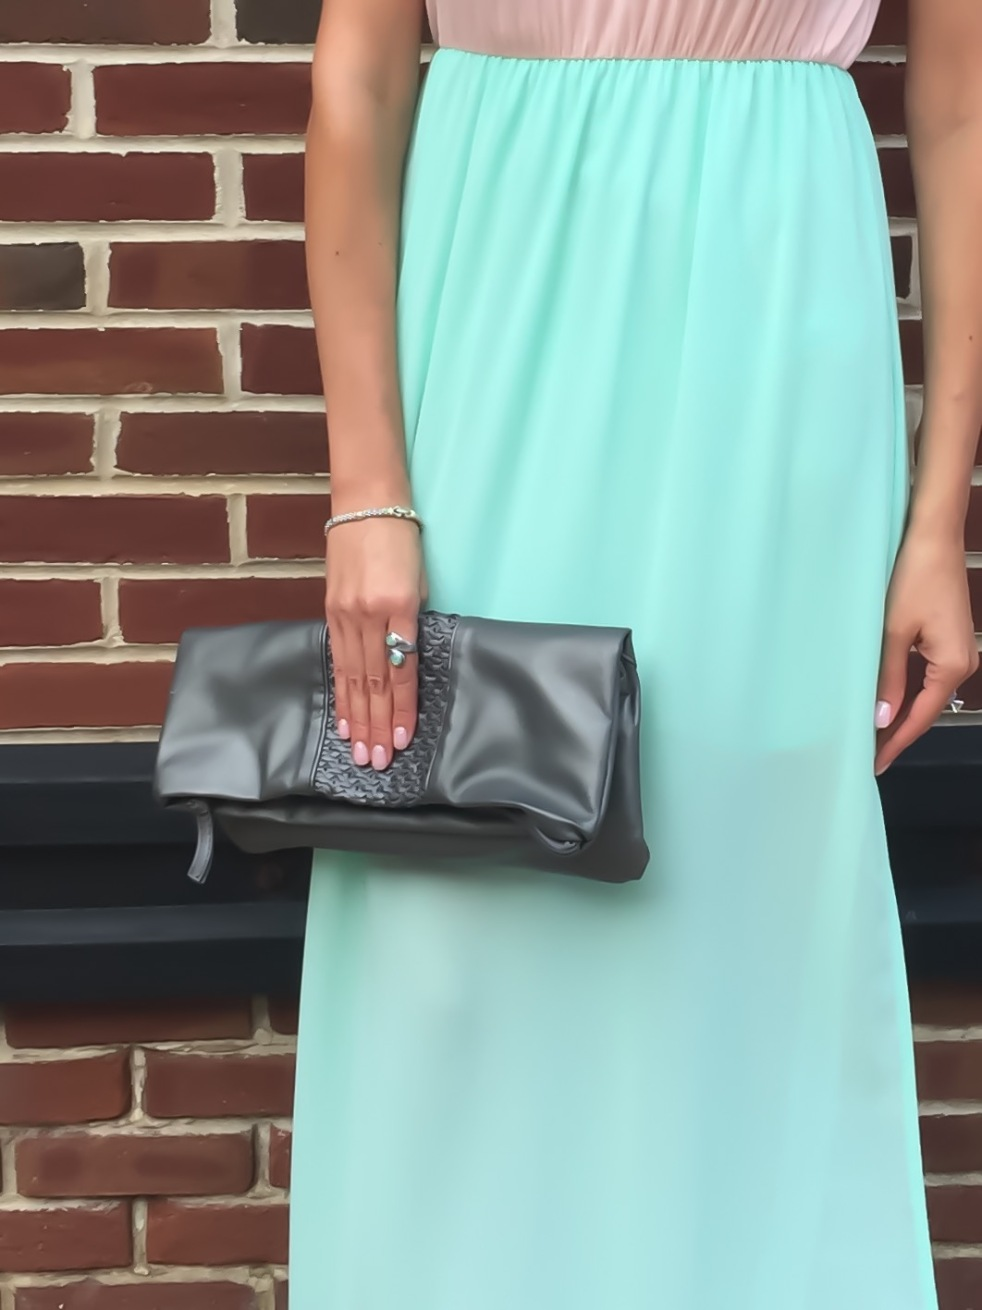 Compendium Boutique Peach and Mint Maxi Dress and Steve Madden Foldover Clutch